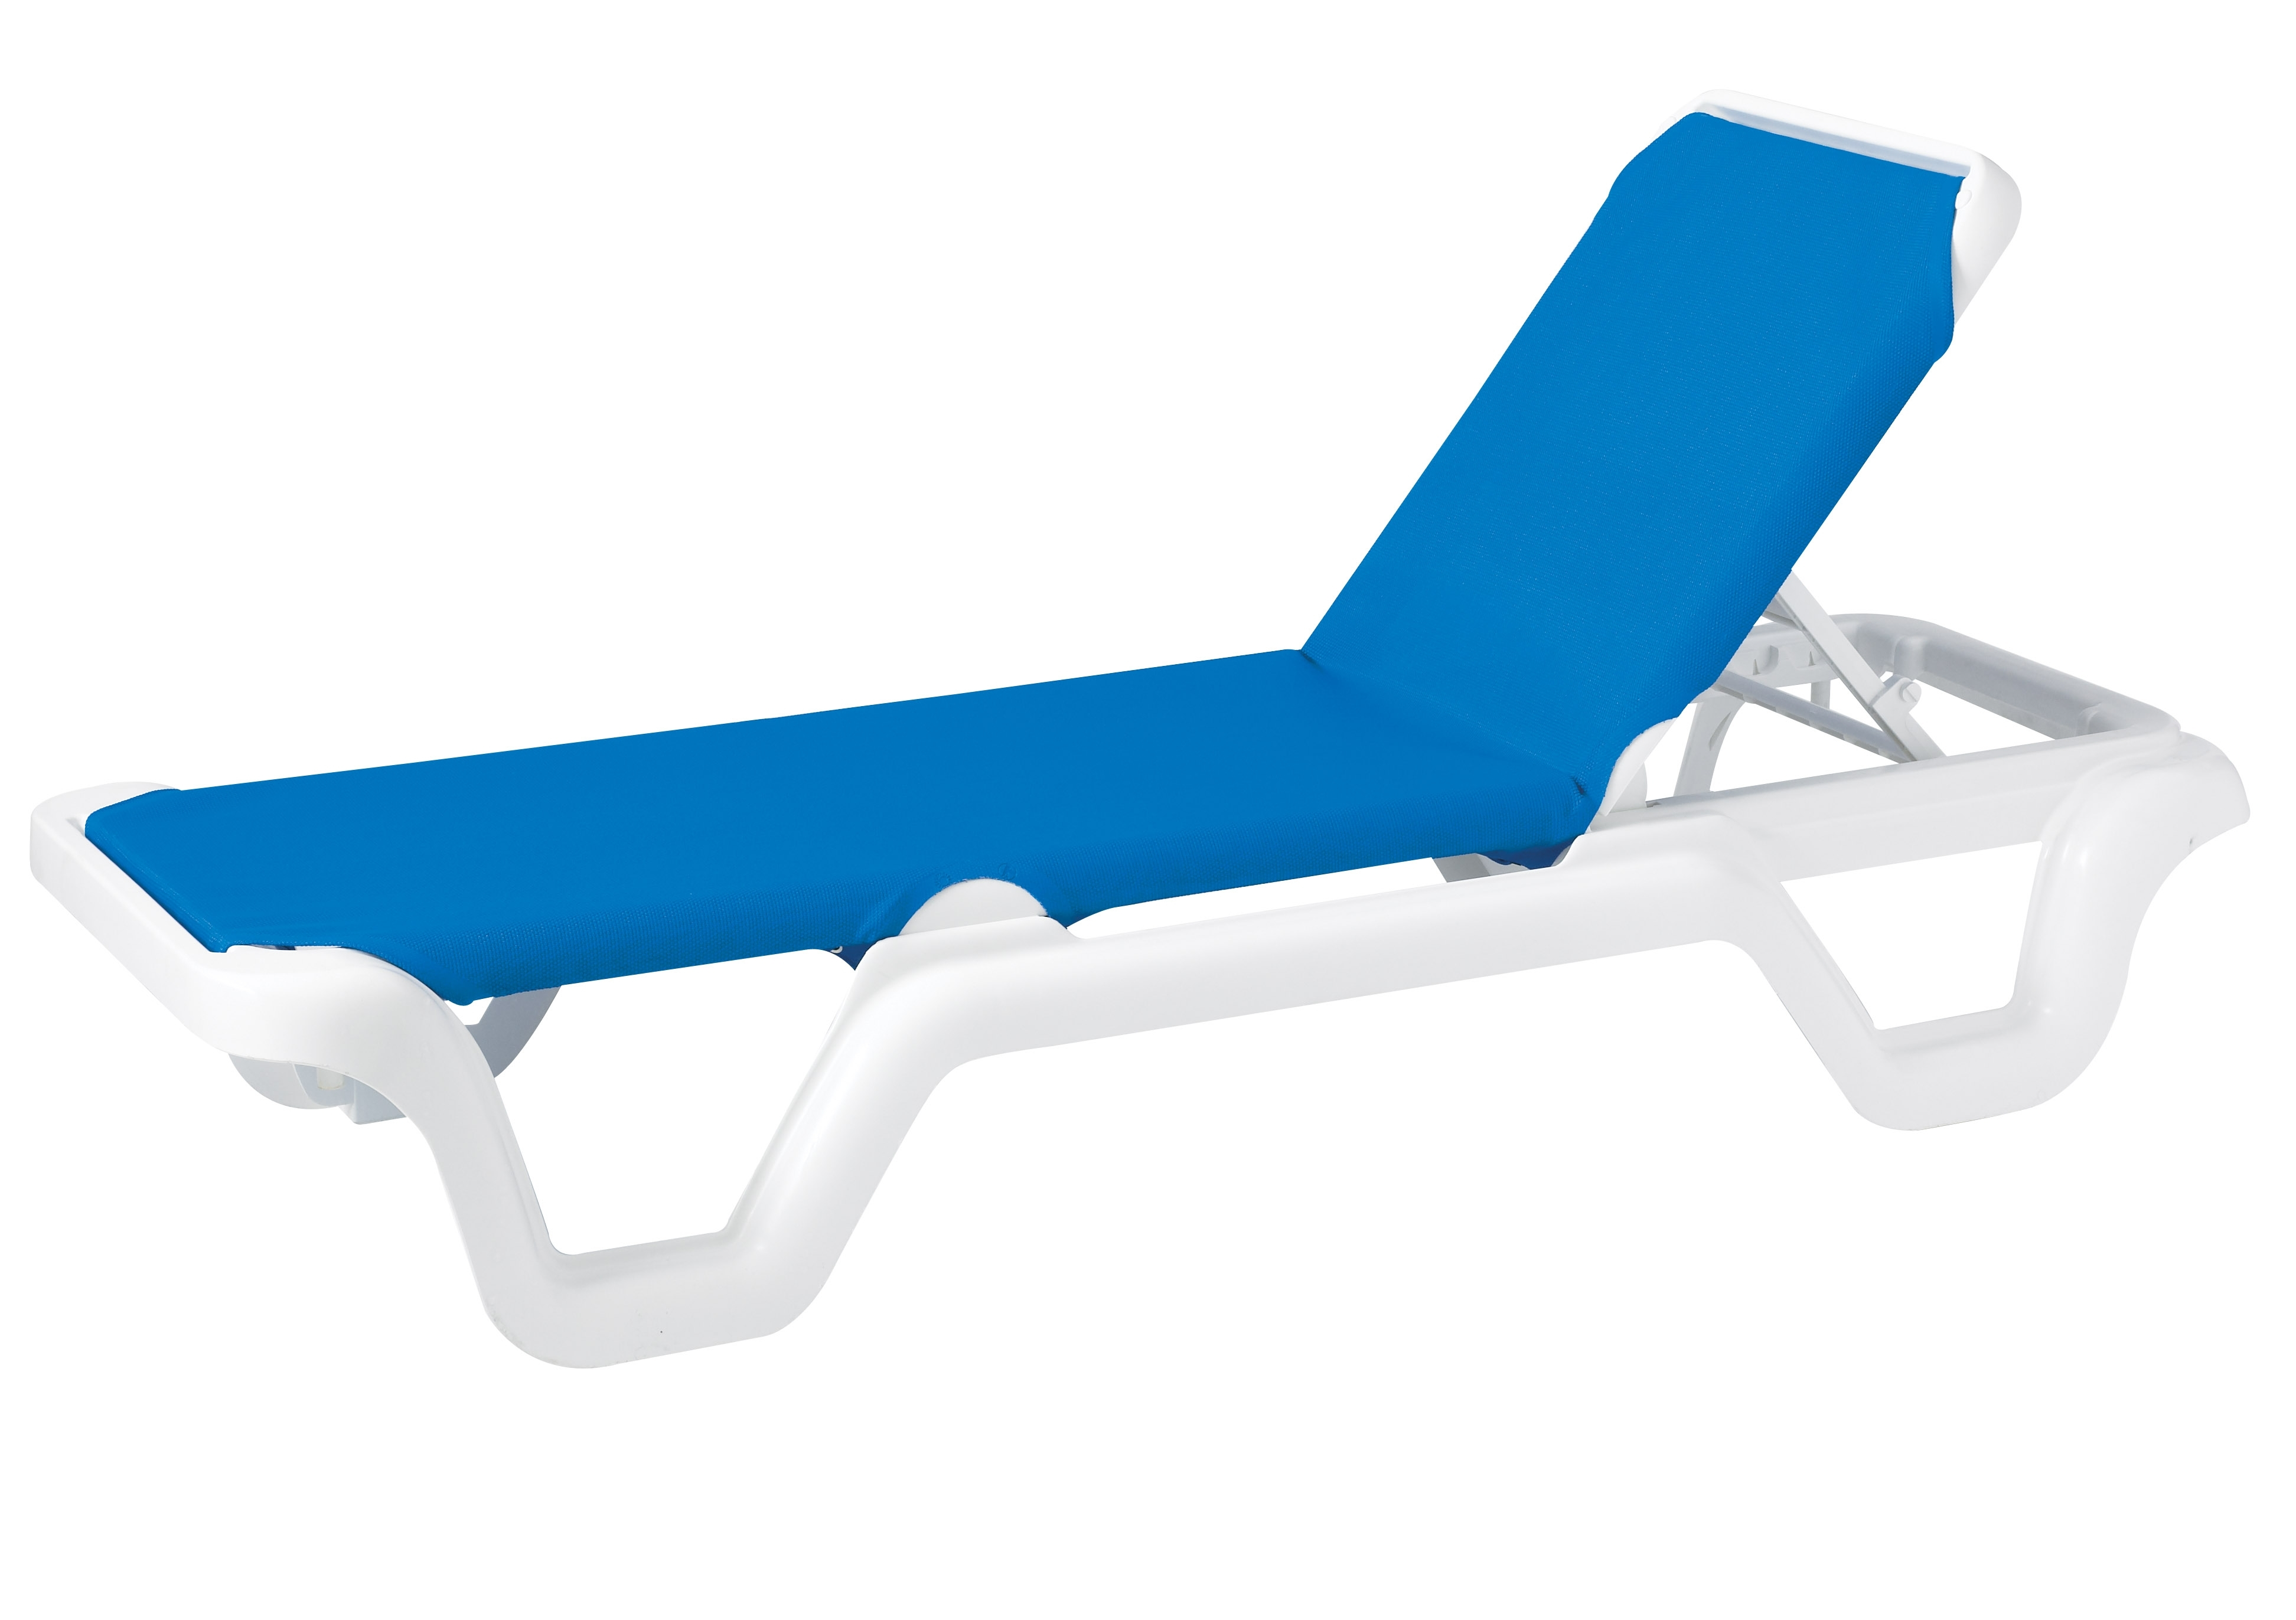 2017 Commercial Outdoor Chaise Lounge Chairs Regarding Grosfillex Marina Style Resin Sling Chaise Lounge Chair W/o Arms (View 15 of 15)